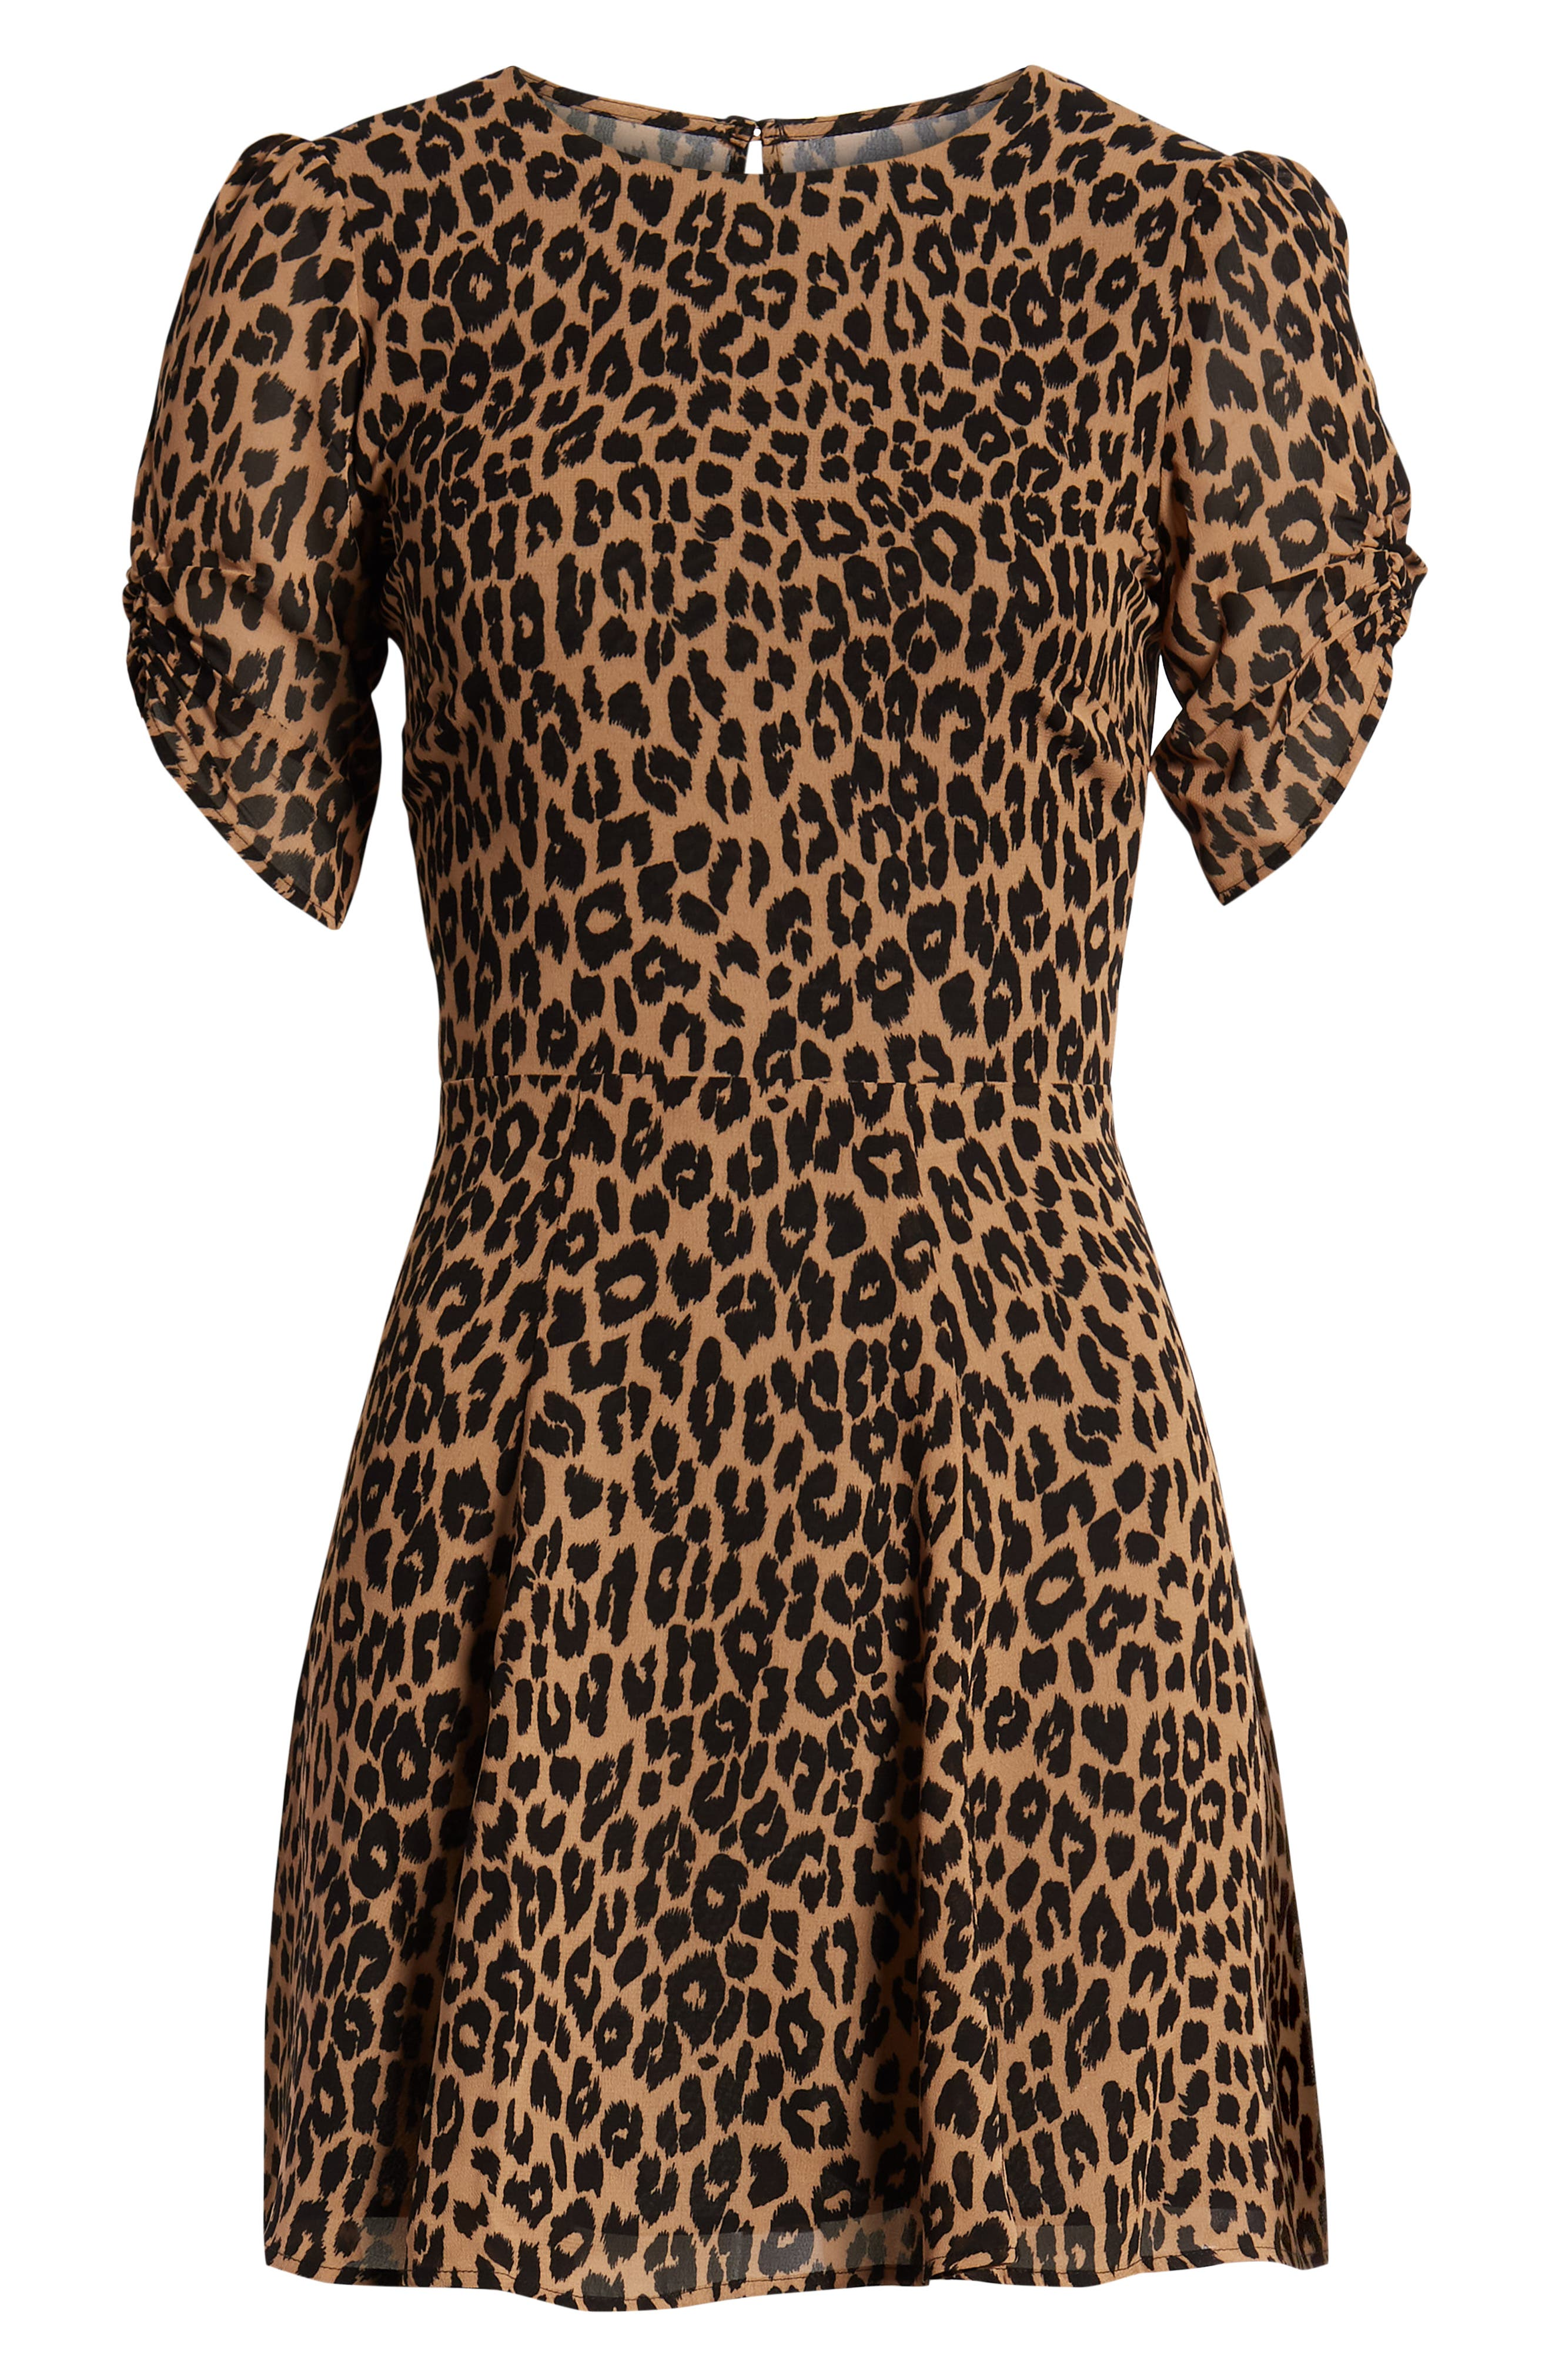 REFORMATION,                             Gracie Ruched Sleeve Minidress,                             Alternate thumbnail 4, color,                             COUGAR